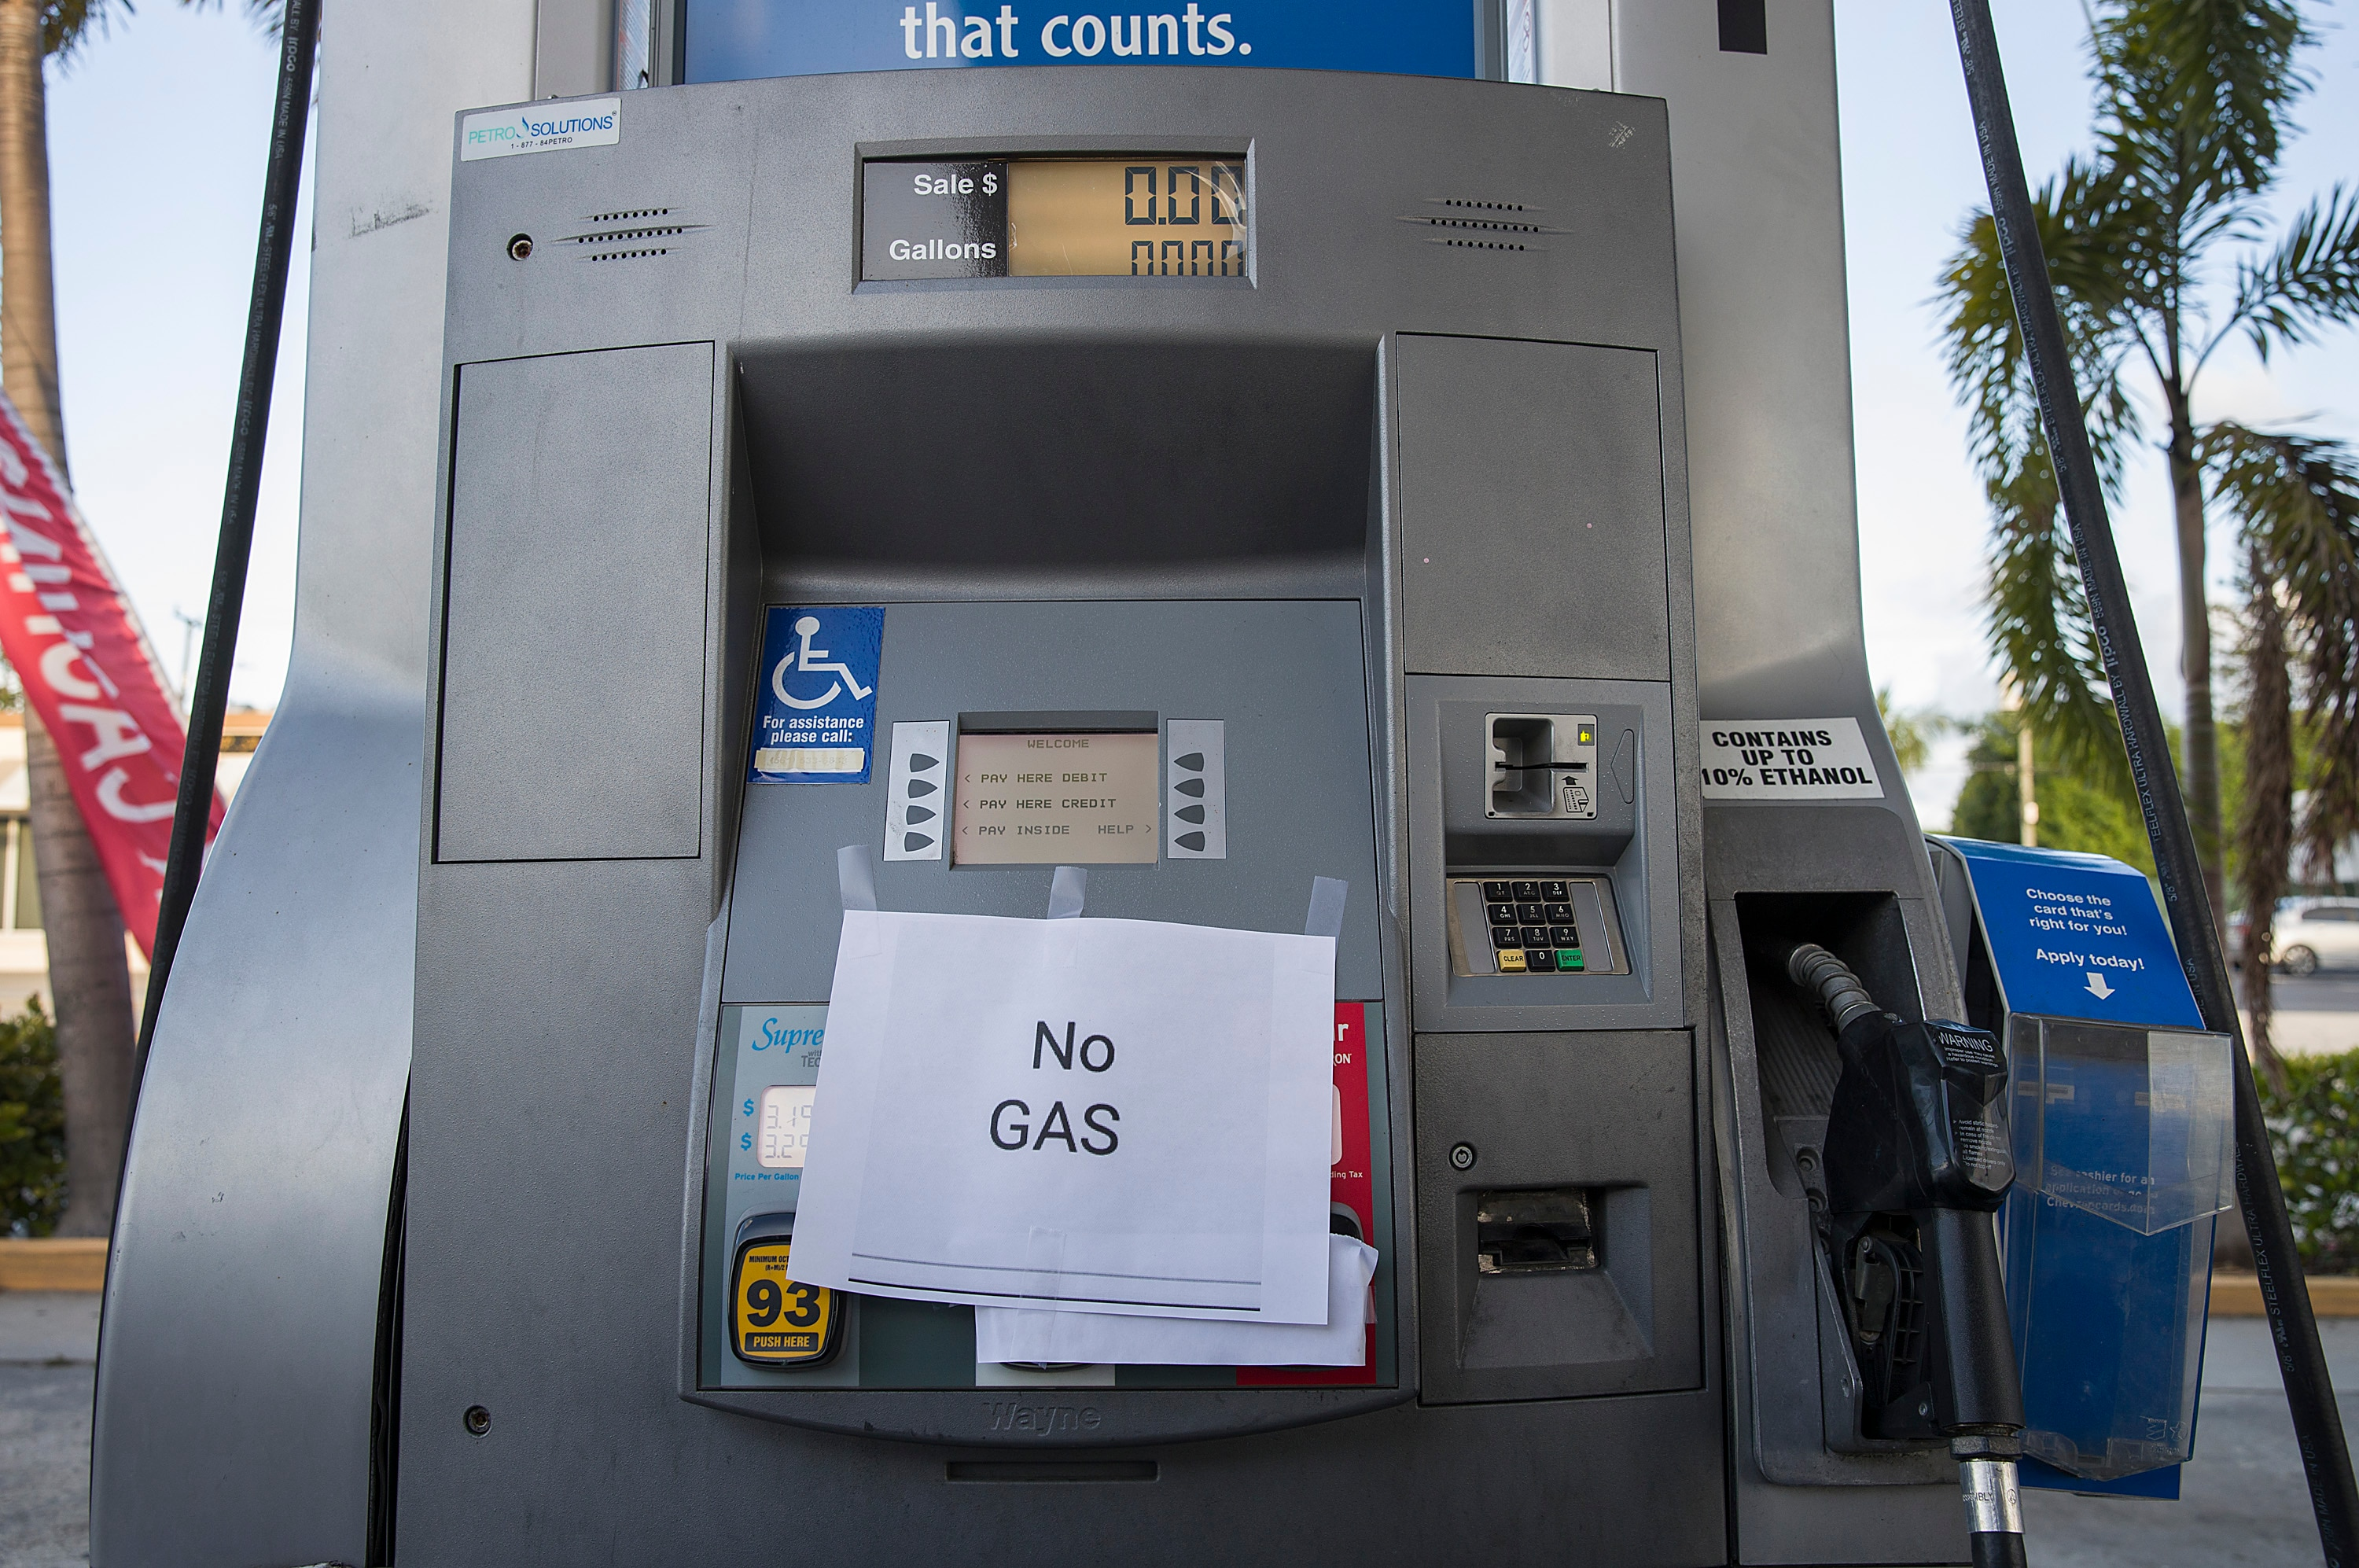 A 'No Gas' sign is seen on a gas pump at a station after it ran out of gas as people get fuel before the arrival of Hurricane Dorian.